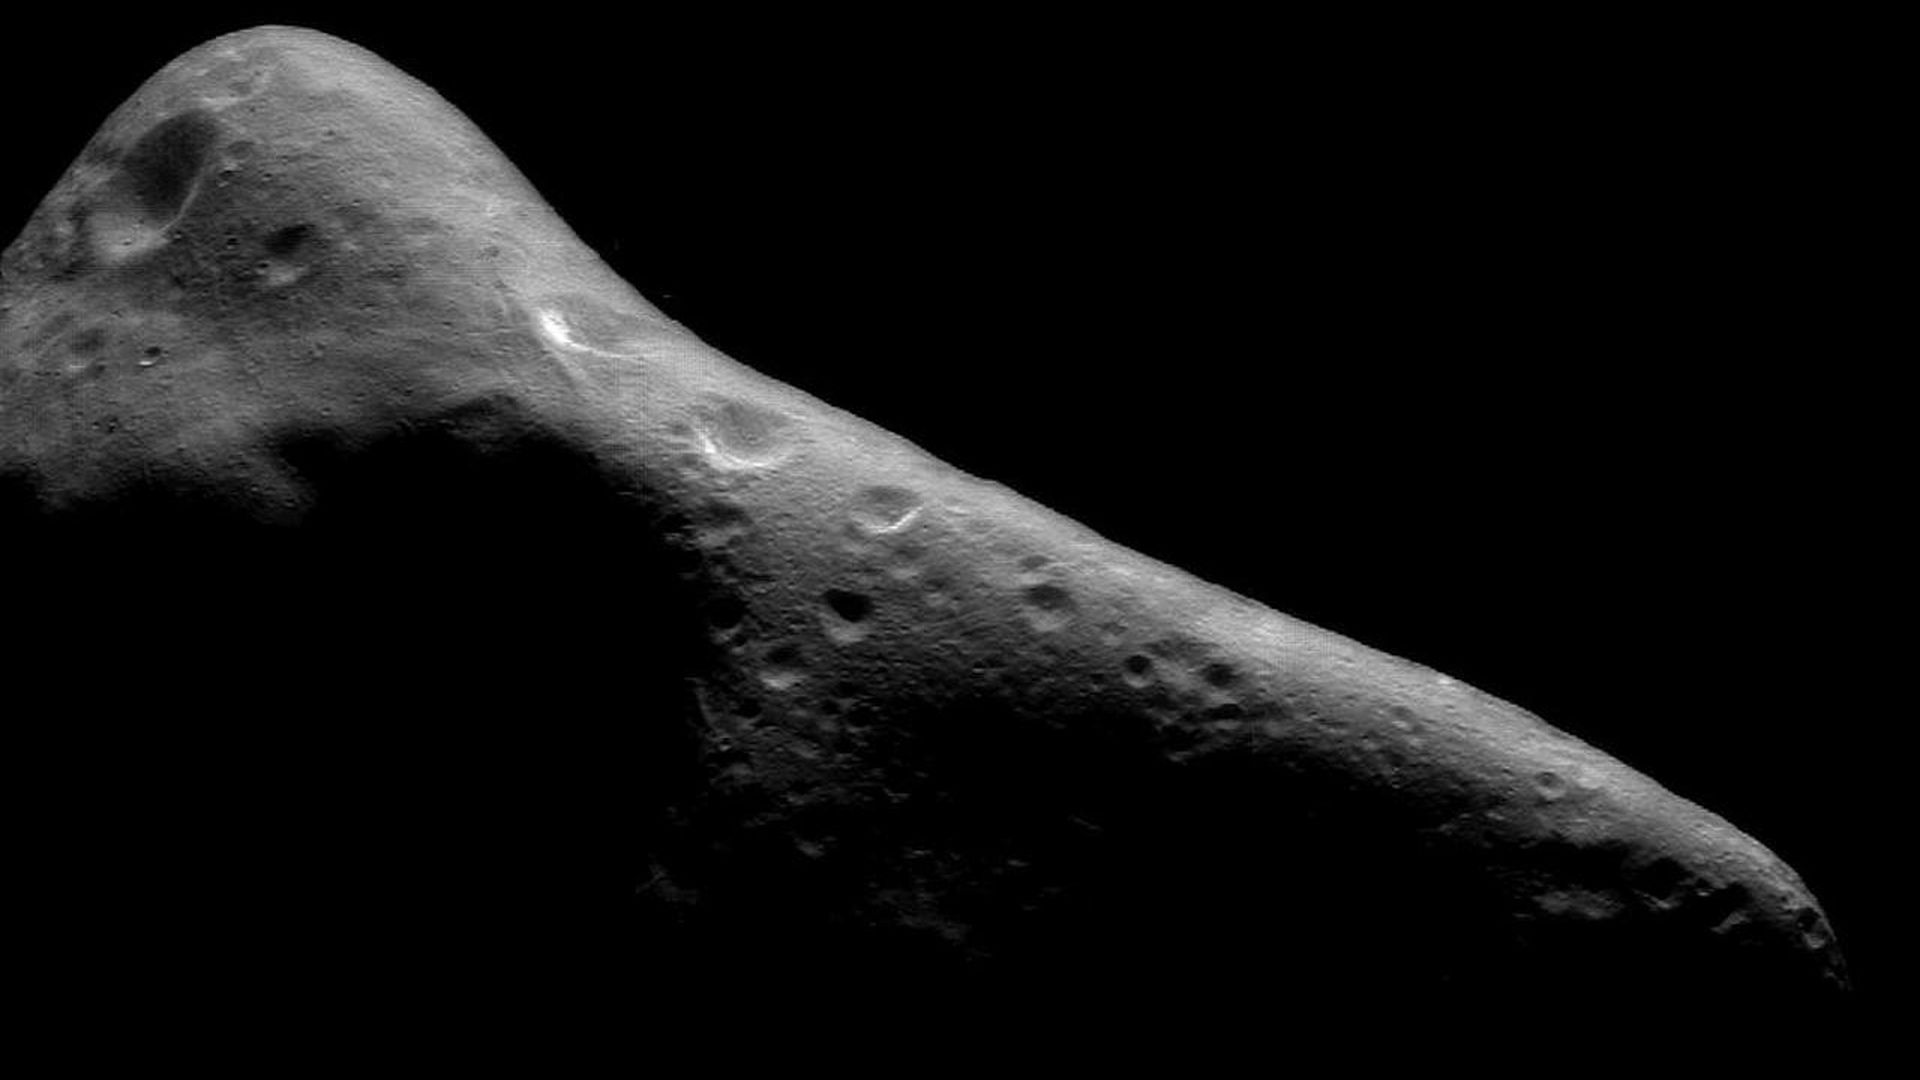 An asteroid seen in deep space